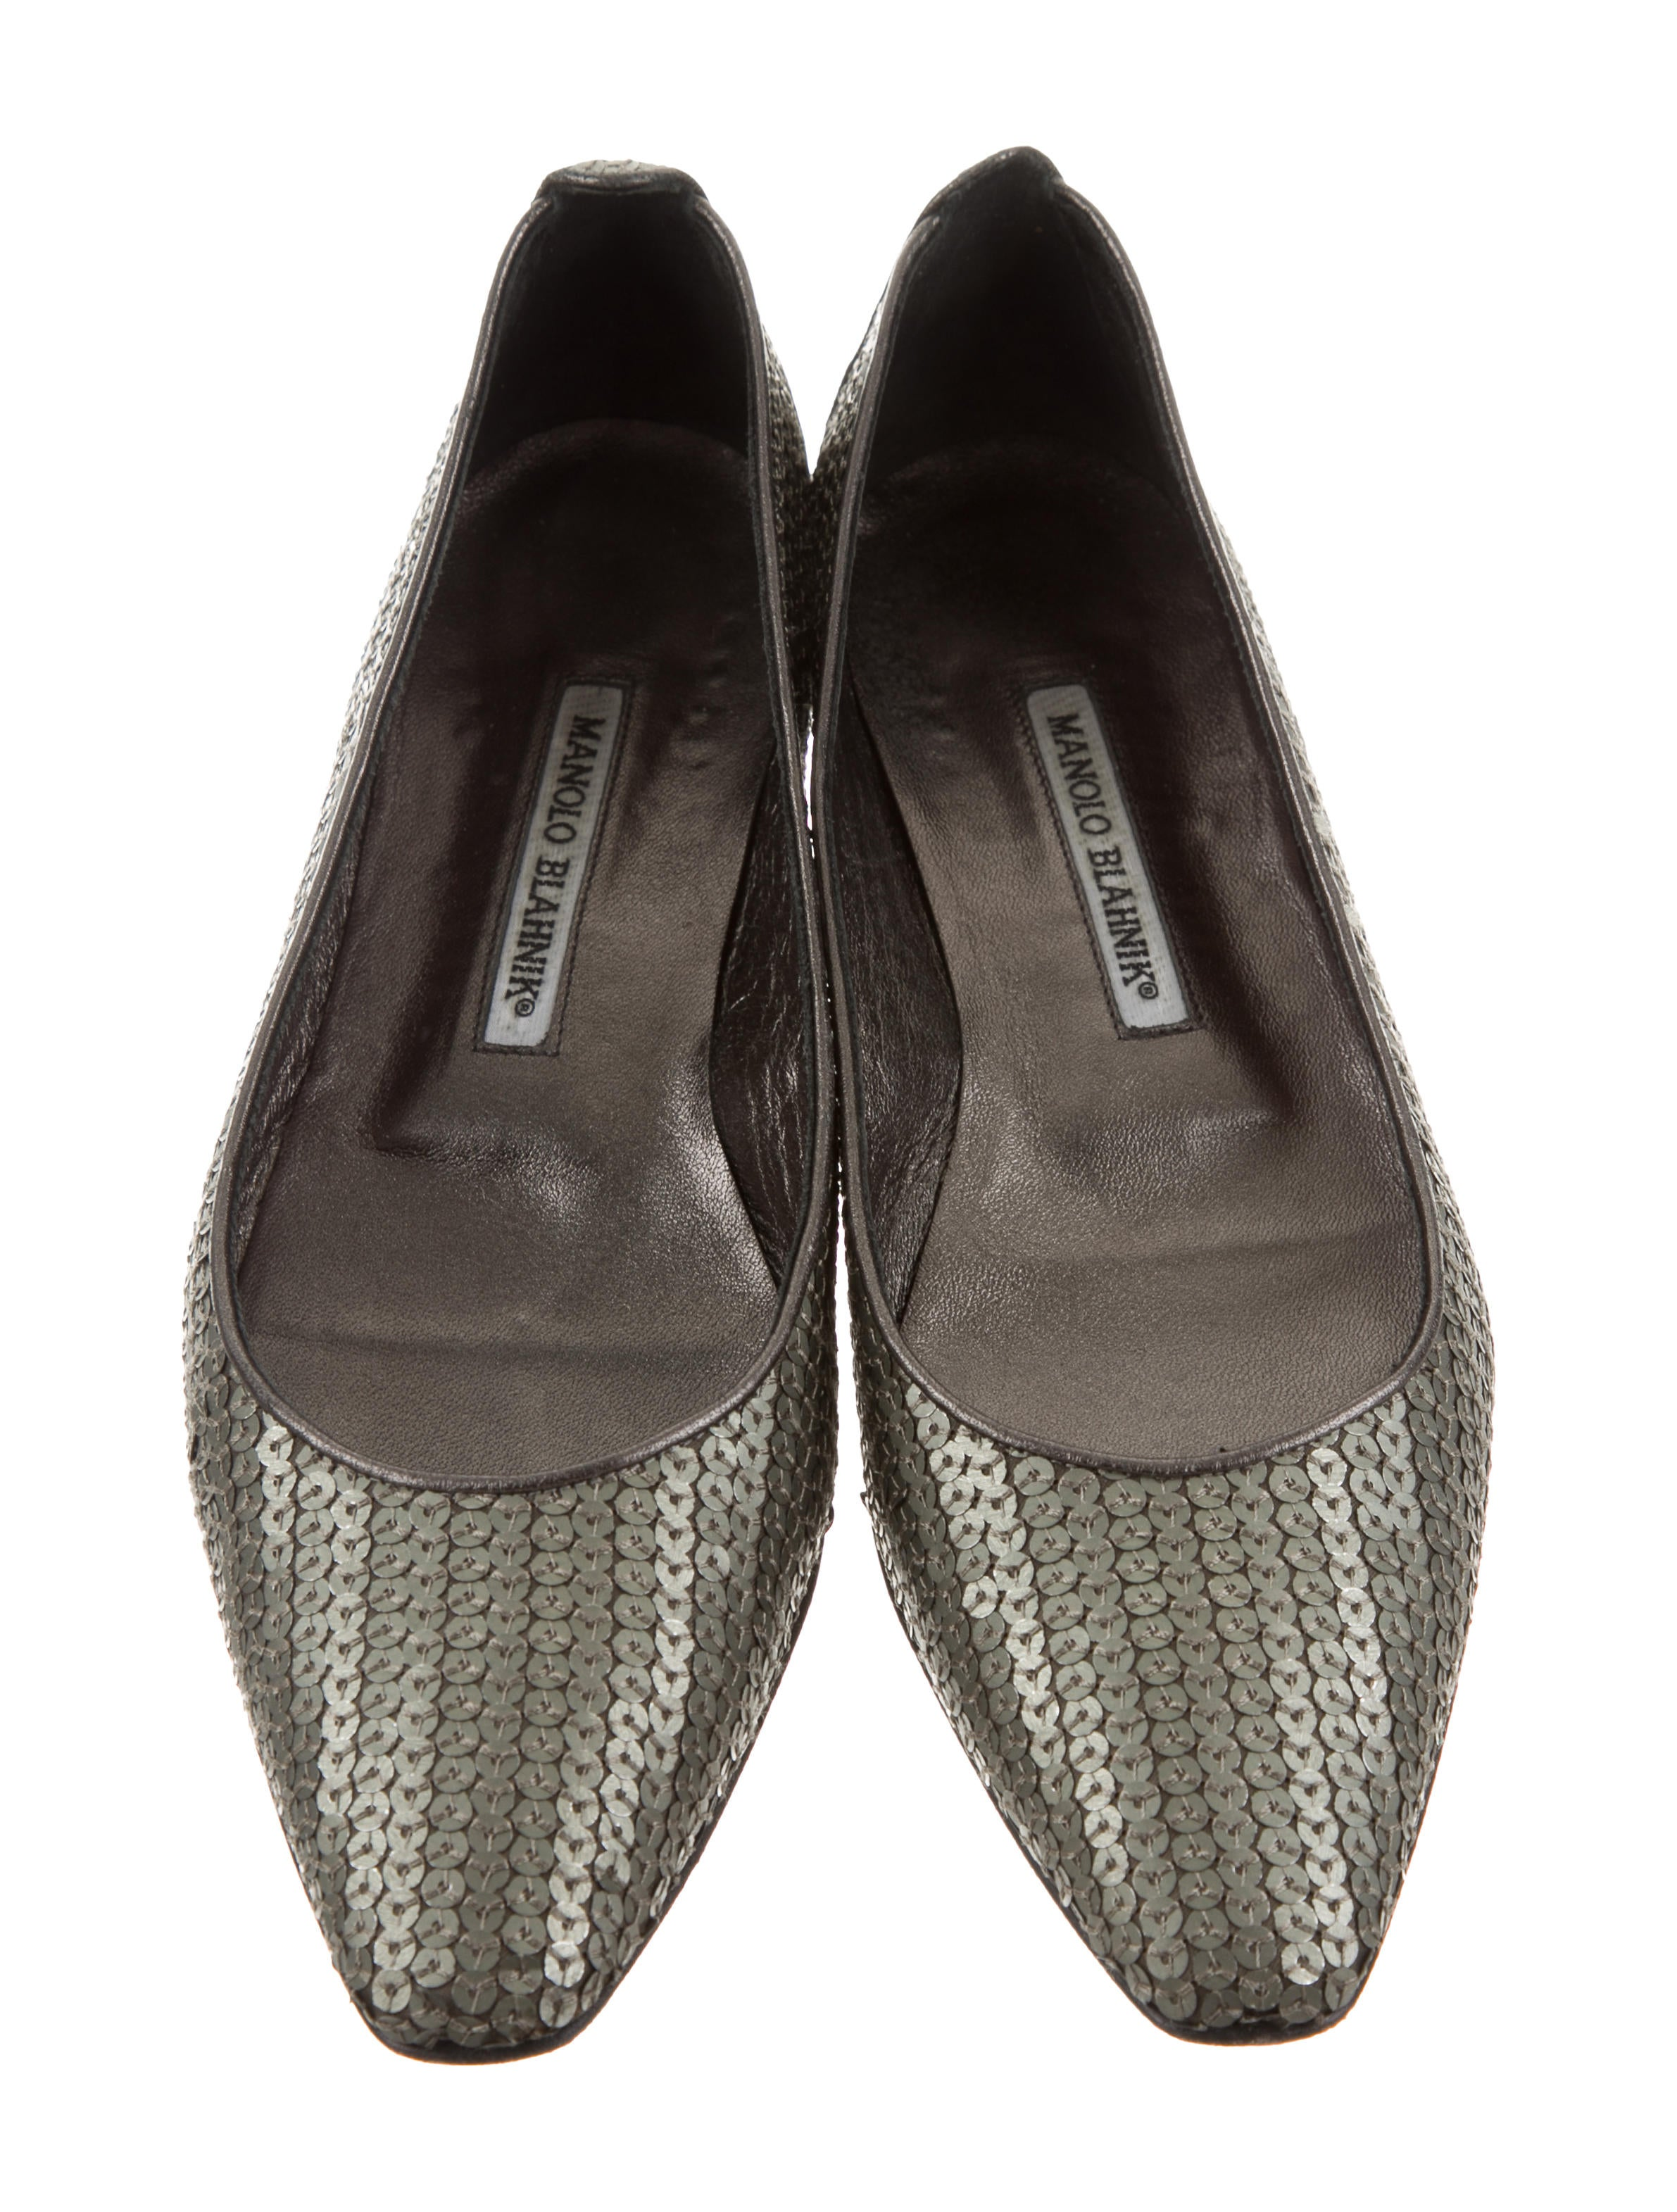 sale the cheapest choice cheap online Manolo Blahnik Sequined Pointed Square-Toe Flats bgW1hYD